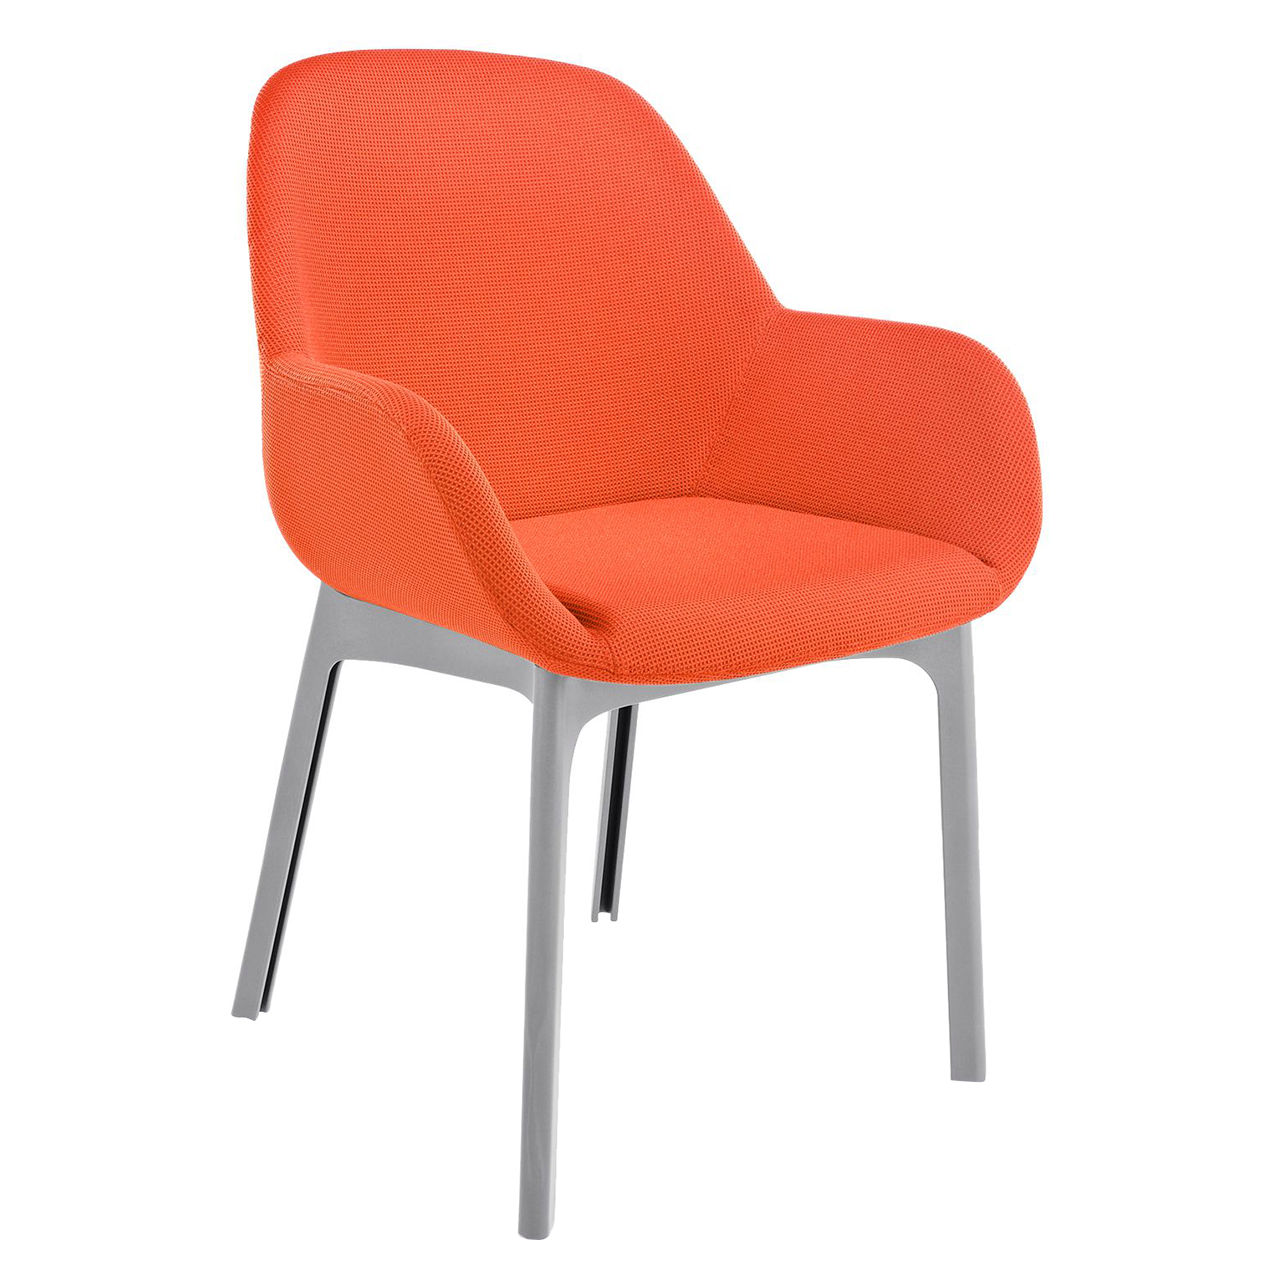 Clap Solid Chair in Trevira Orange by Kartell